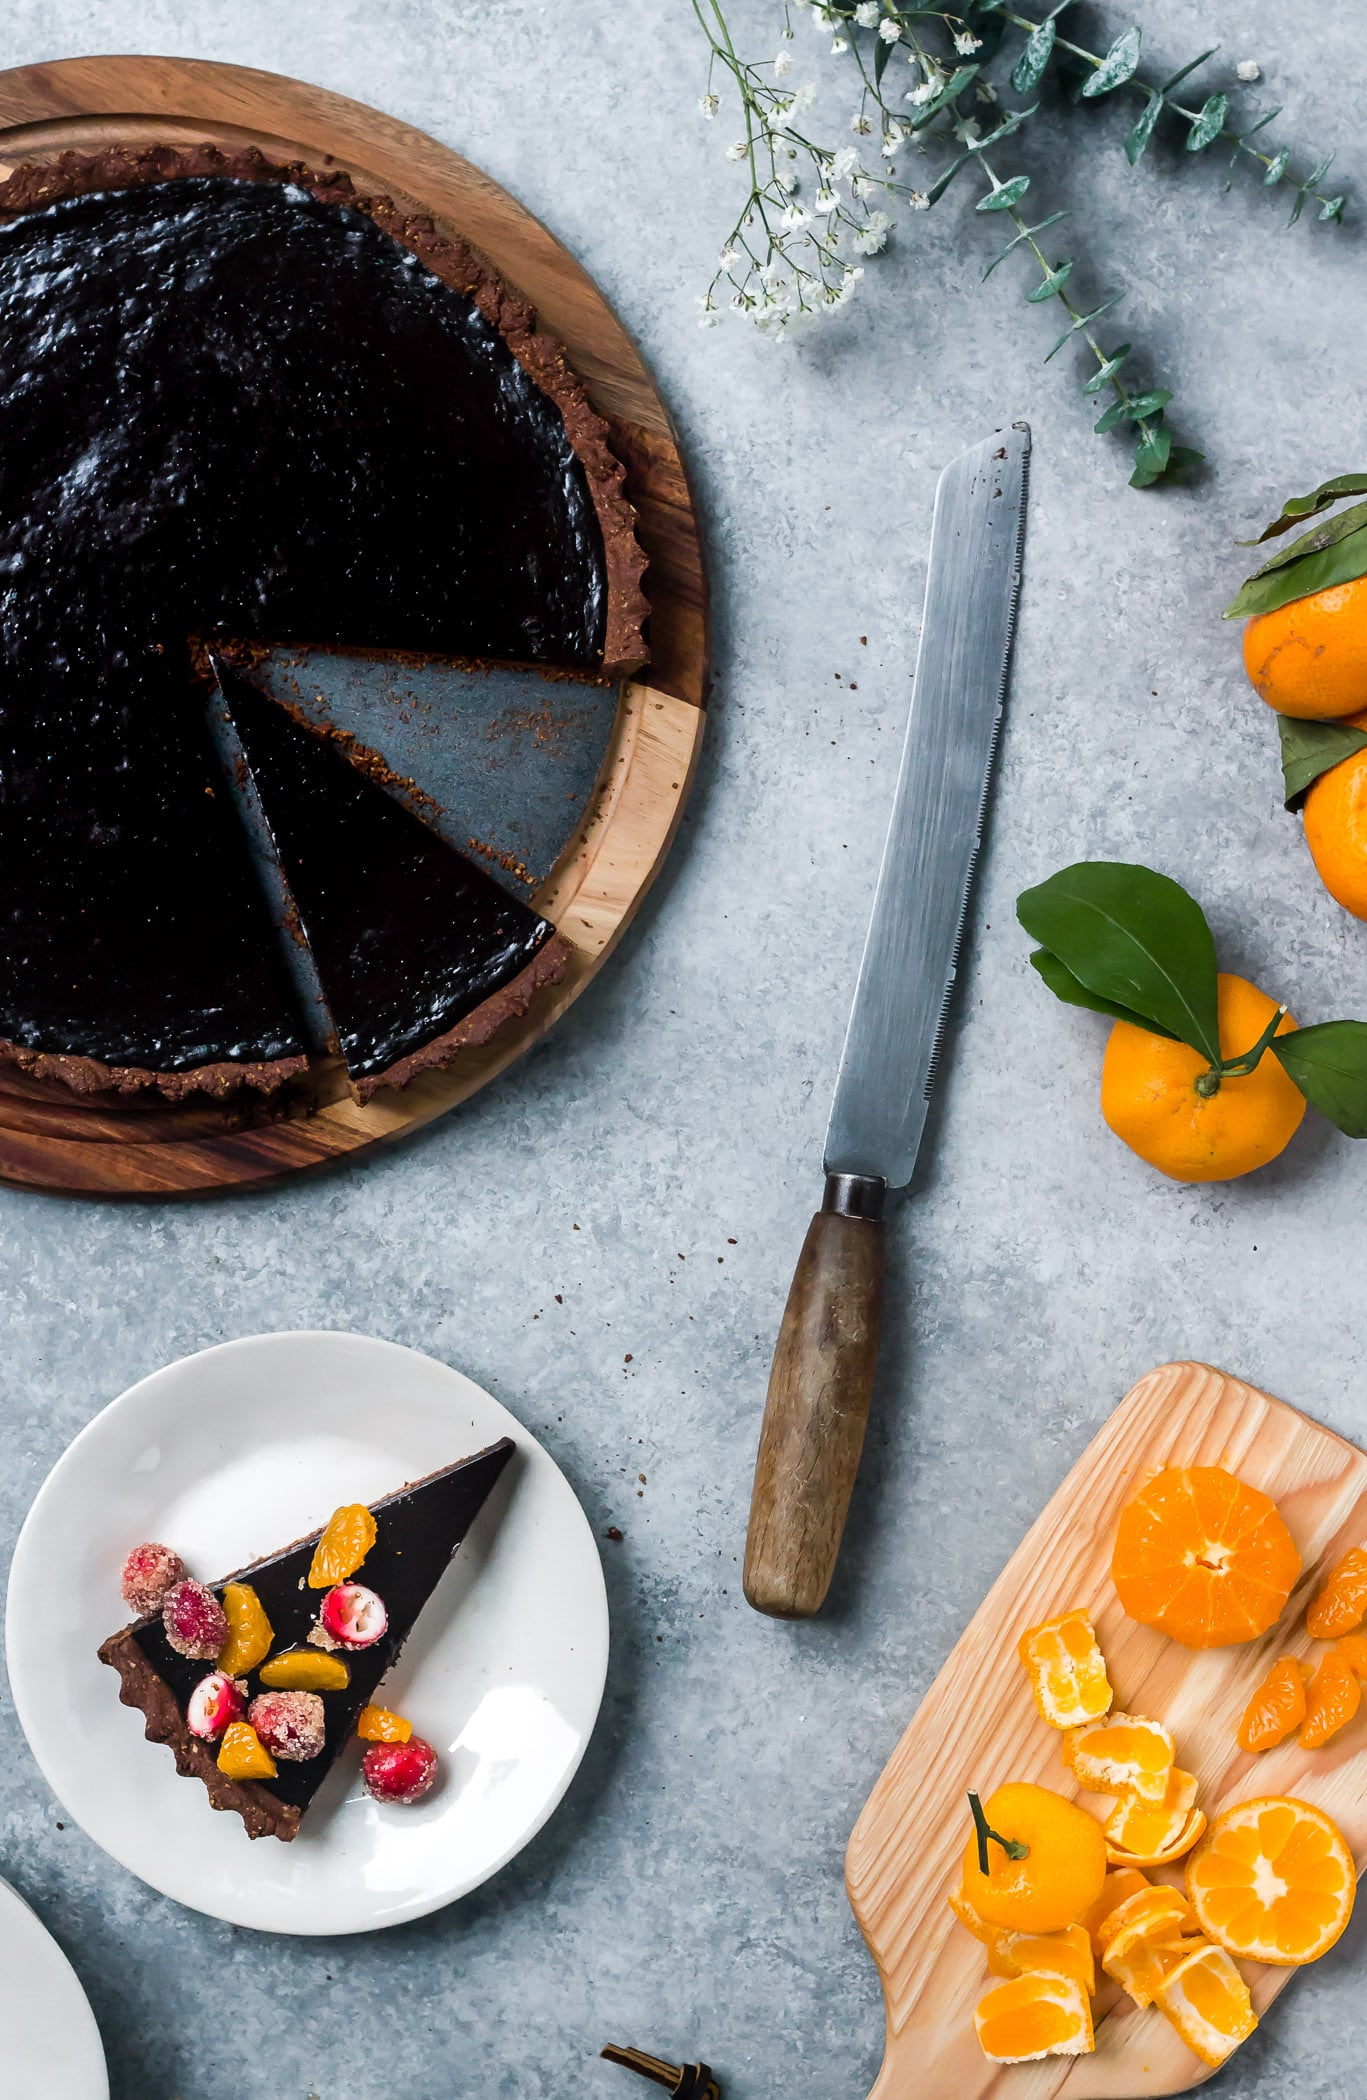 sliced dark chocolate tart topped with sugared cranberries and satsumas